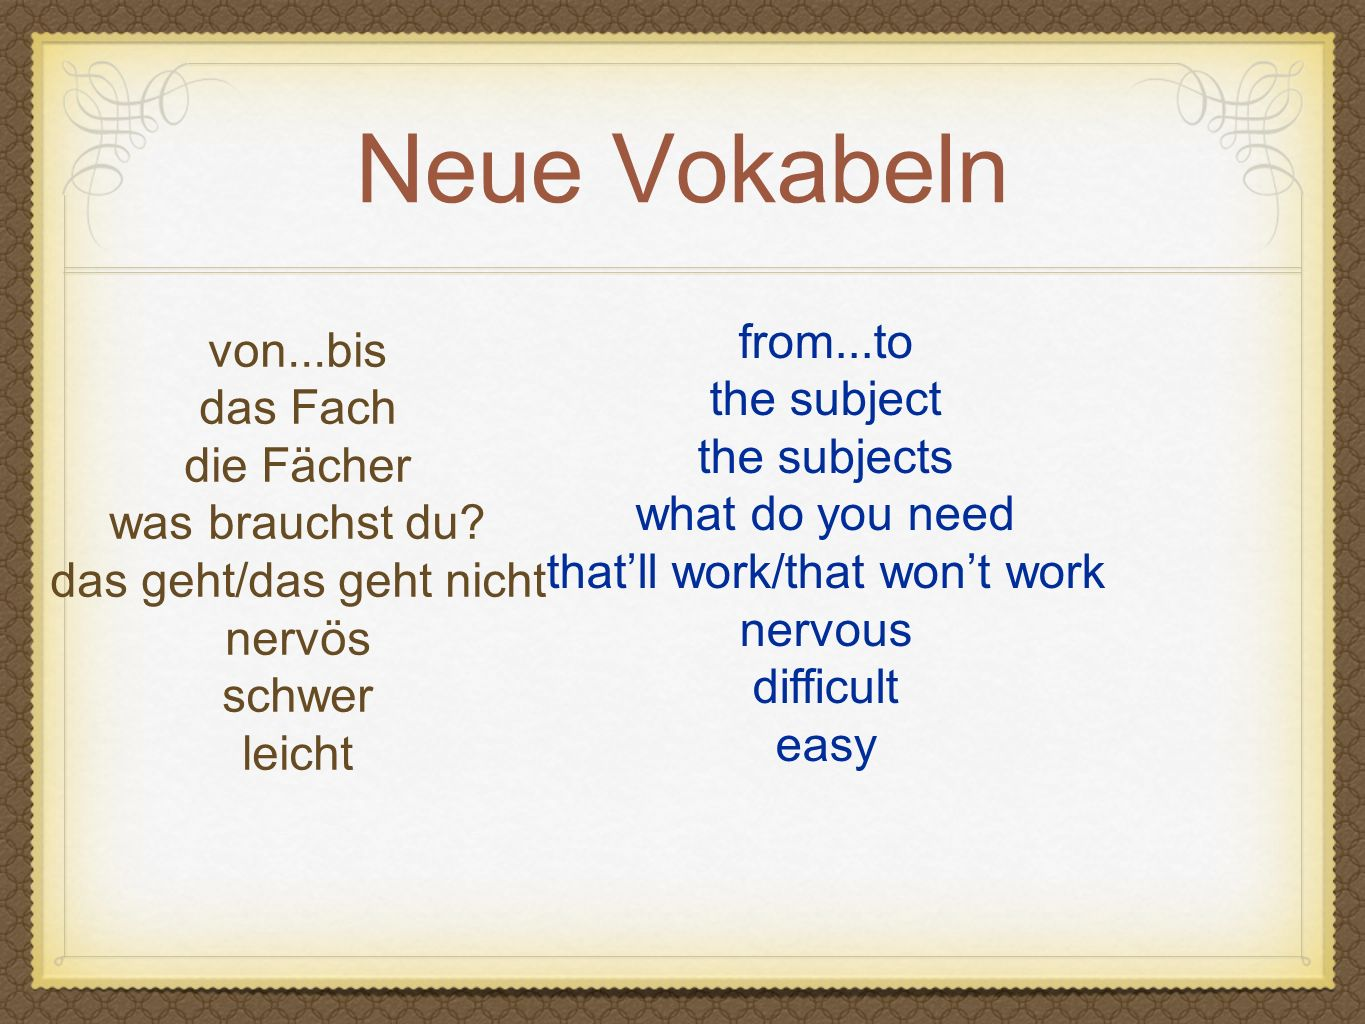 Neue Vokabeln from...to von...bis the subject das Fach the subjects